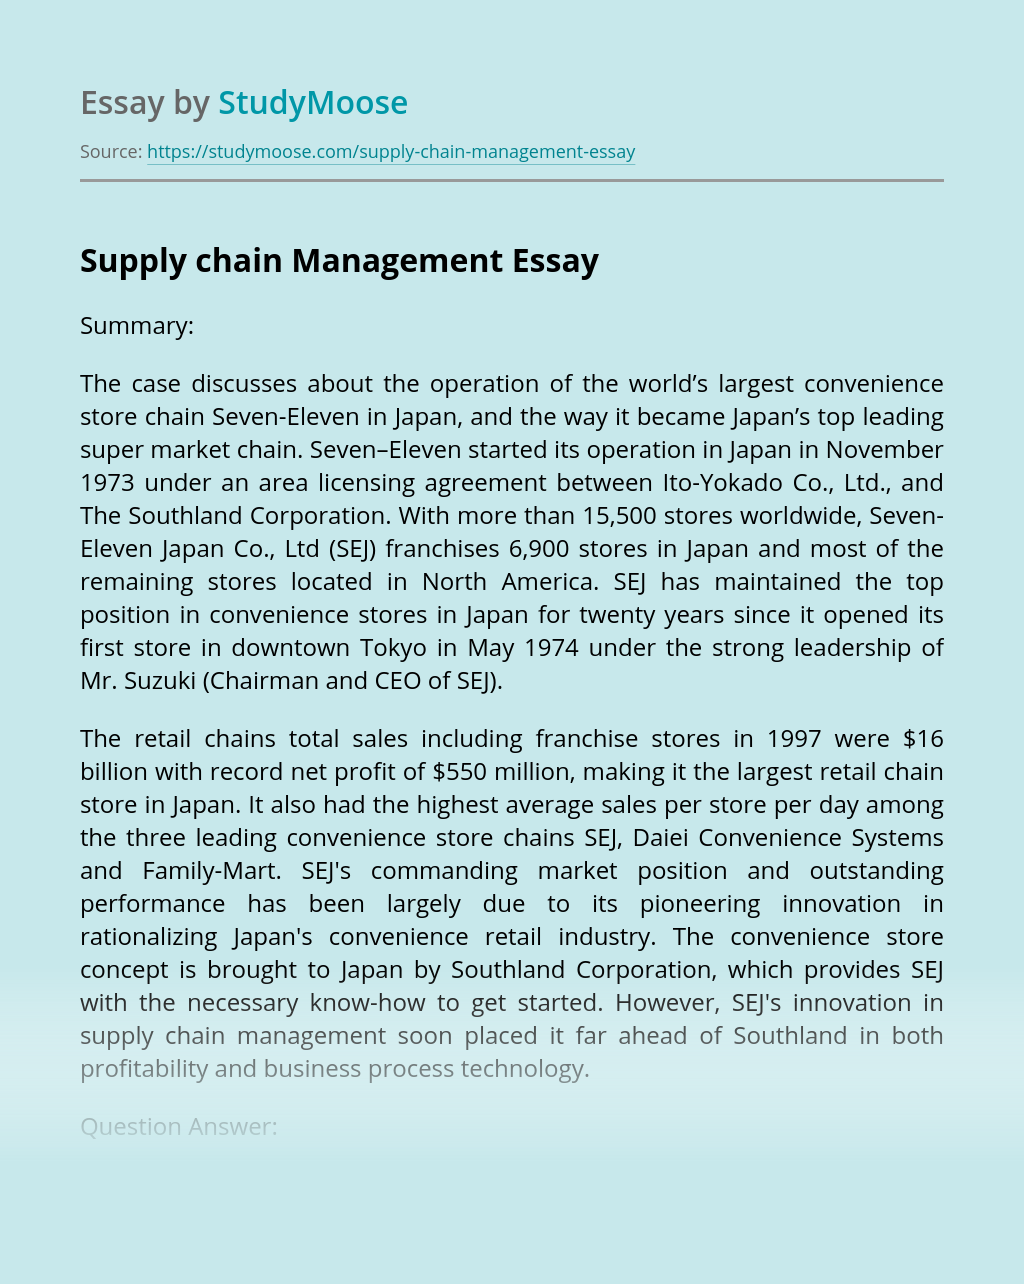 Supply Chain Management in Seven-Eleven Convenience Store Chain